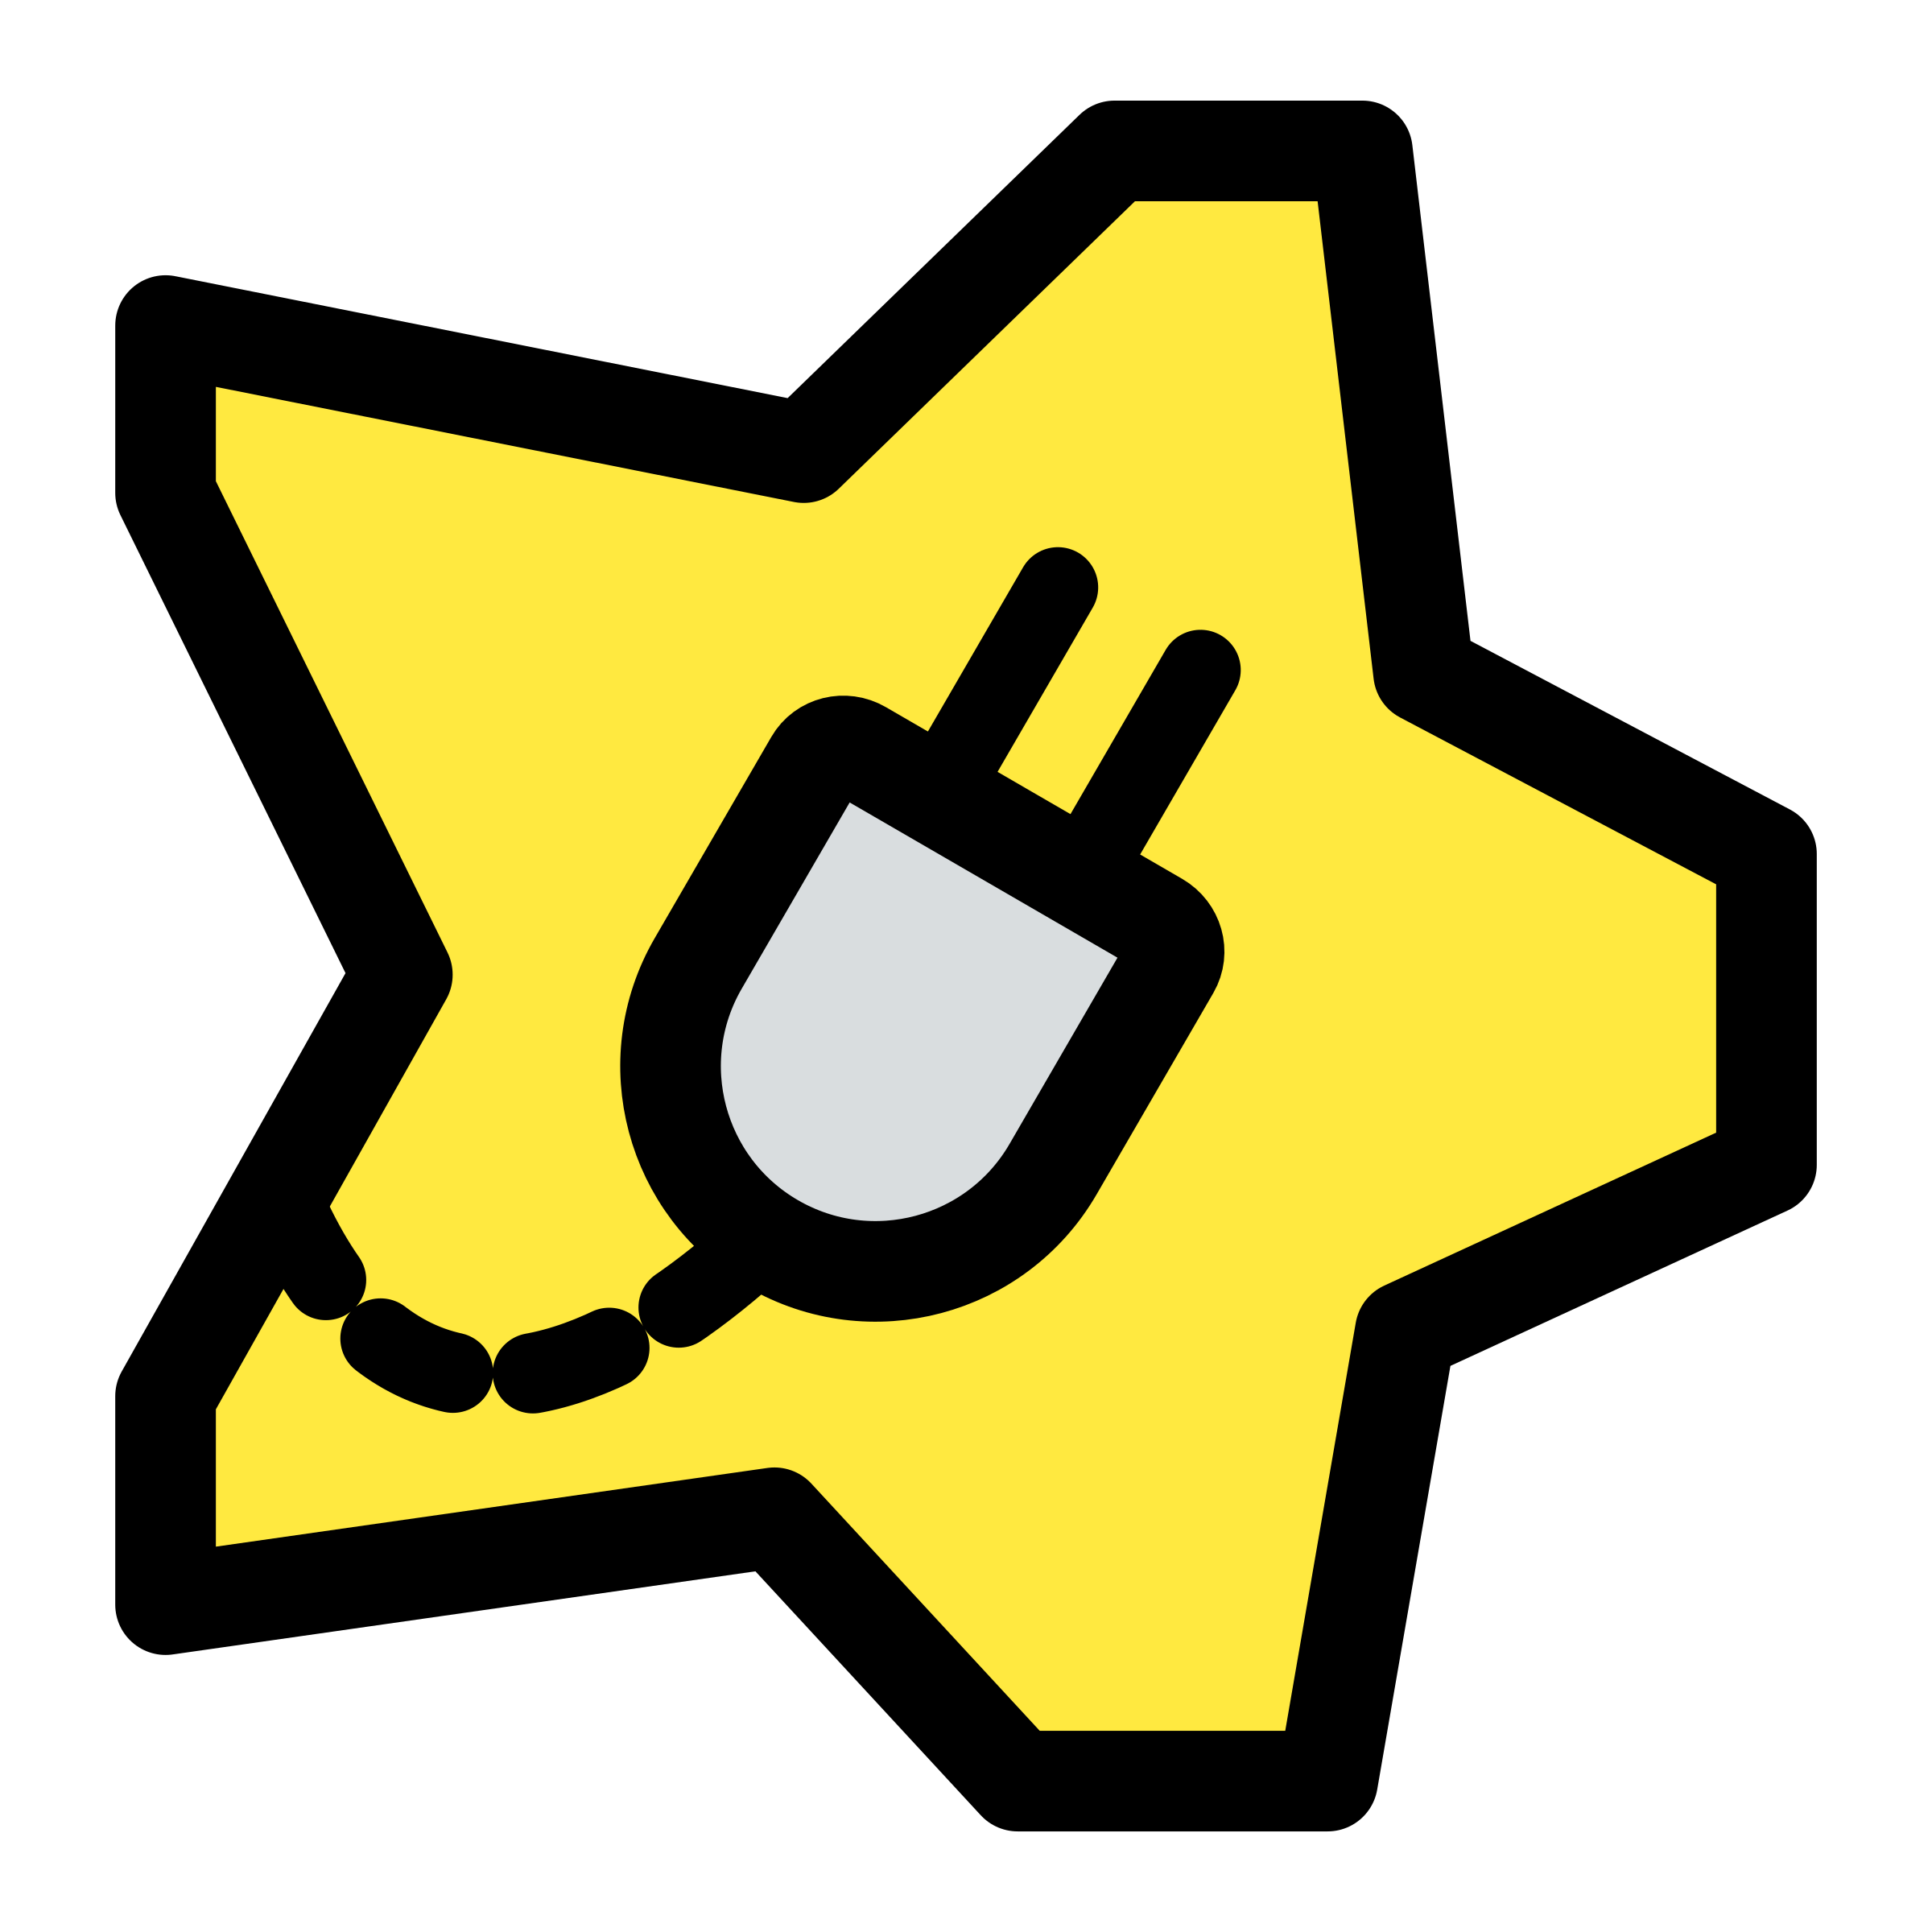 Primary star icons png. Energy clipart icon